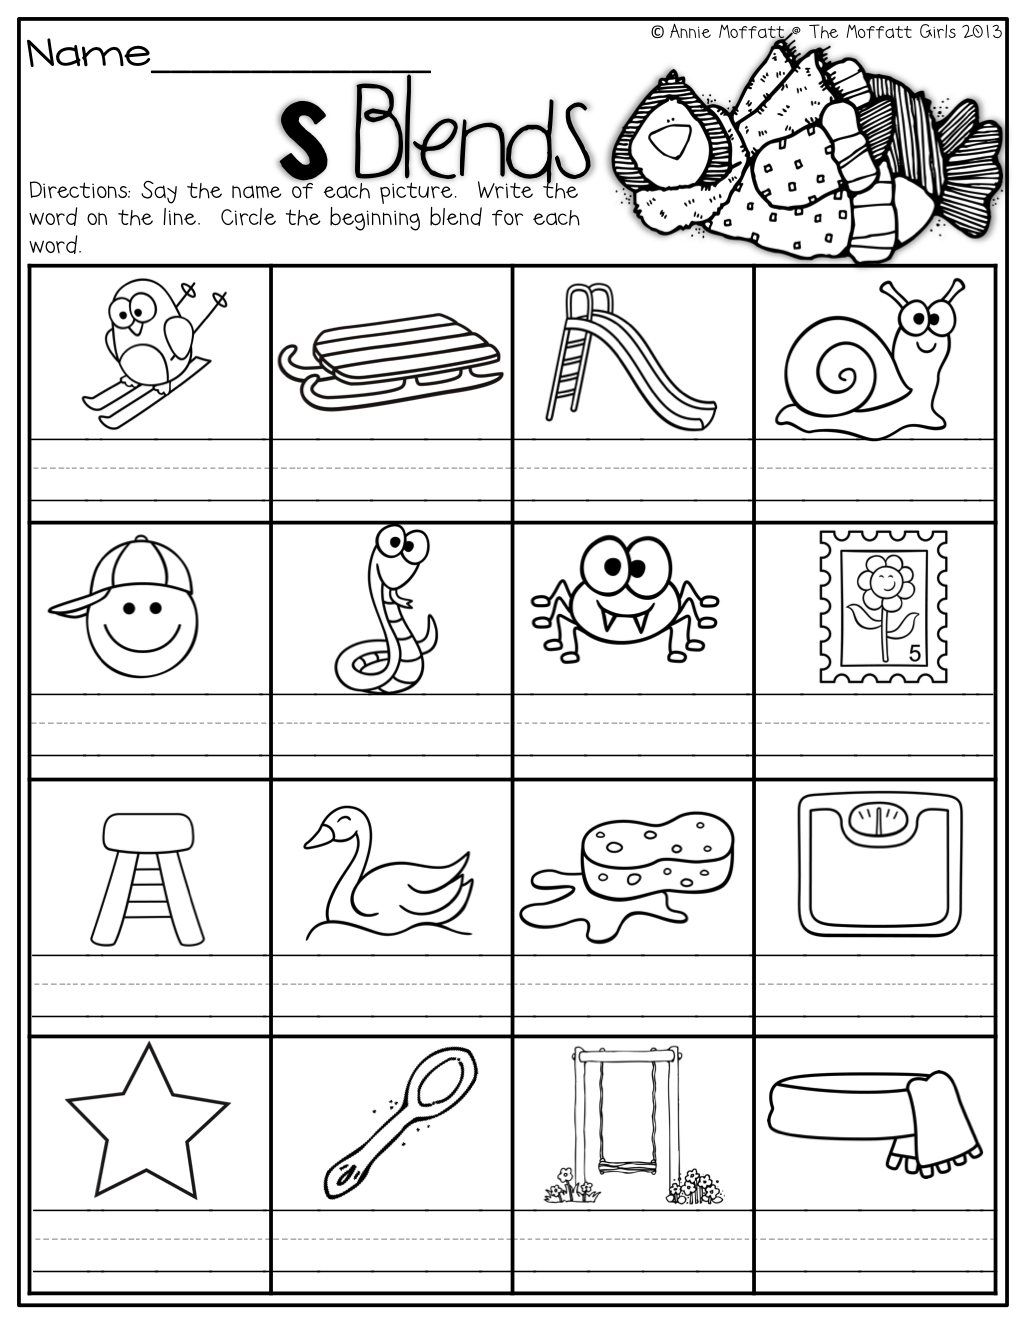 S blend coloring pages - S Blends